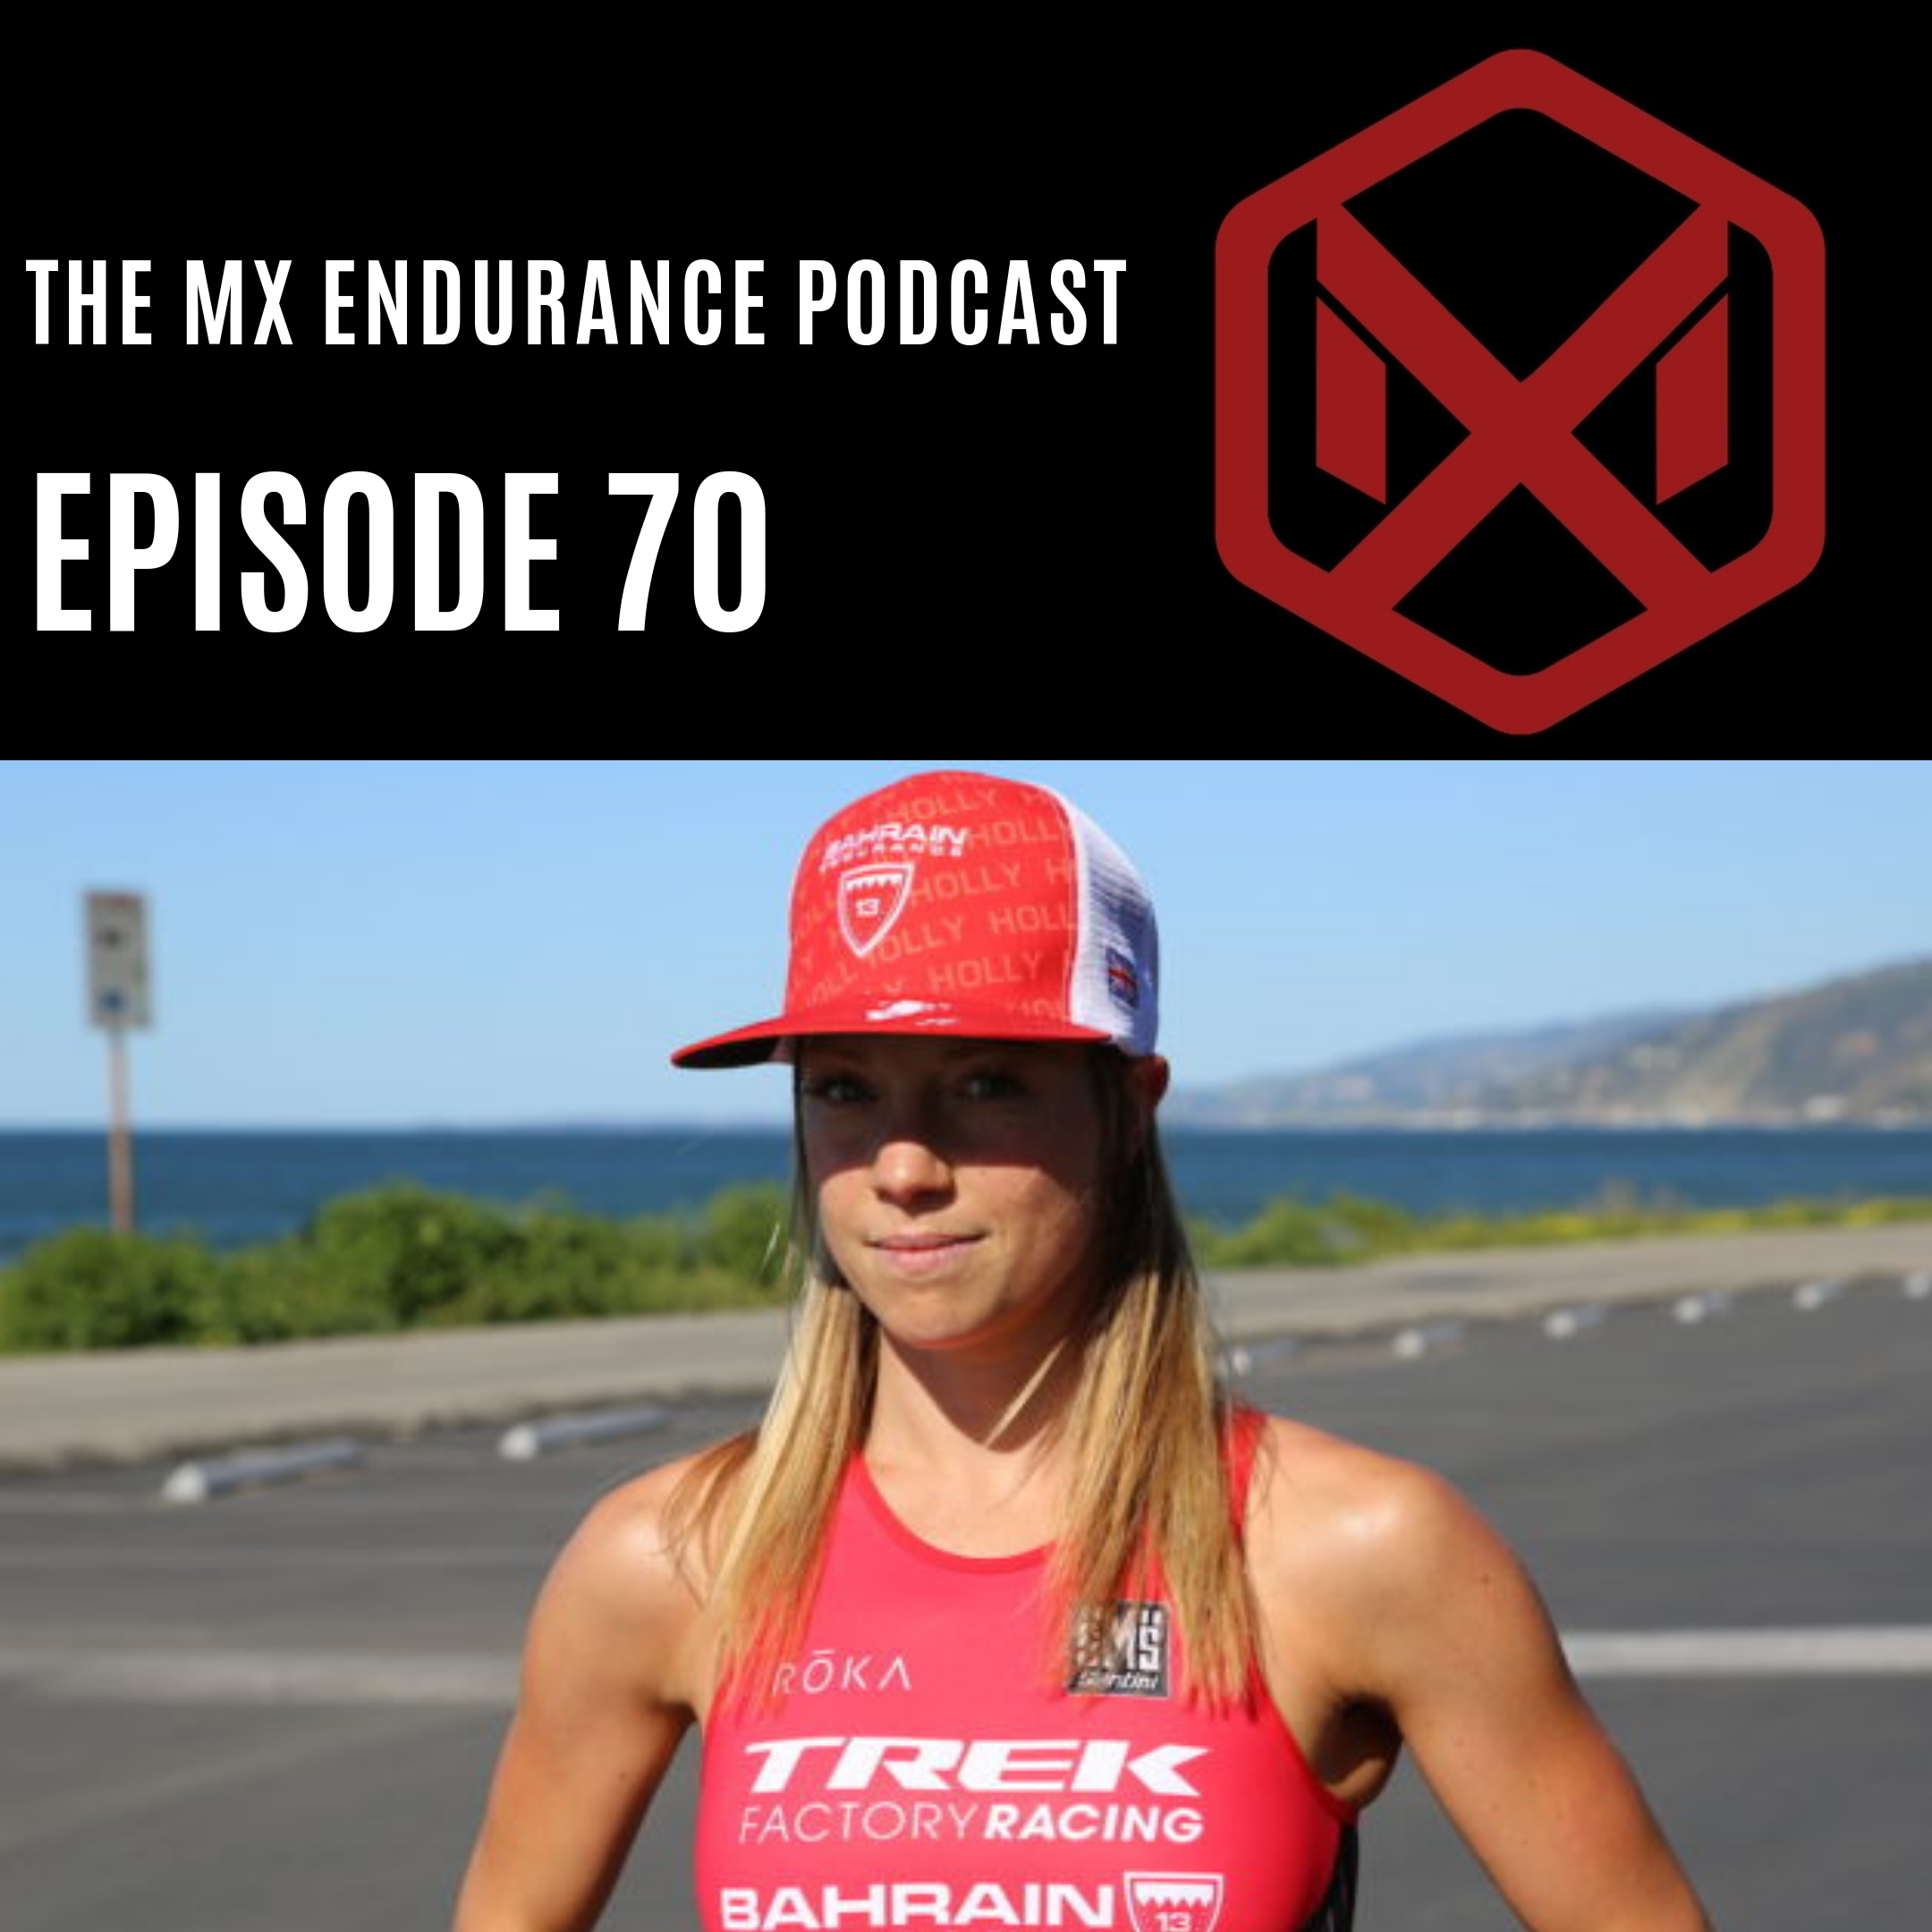 #70 - 70.3 World Championship Special with Holly Lawrence